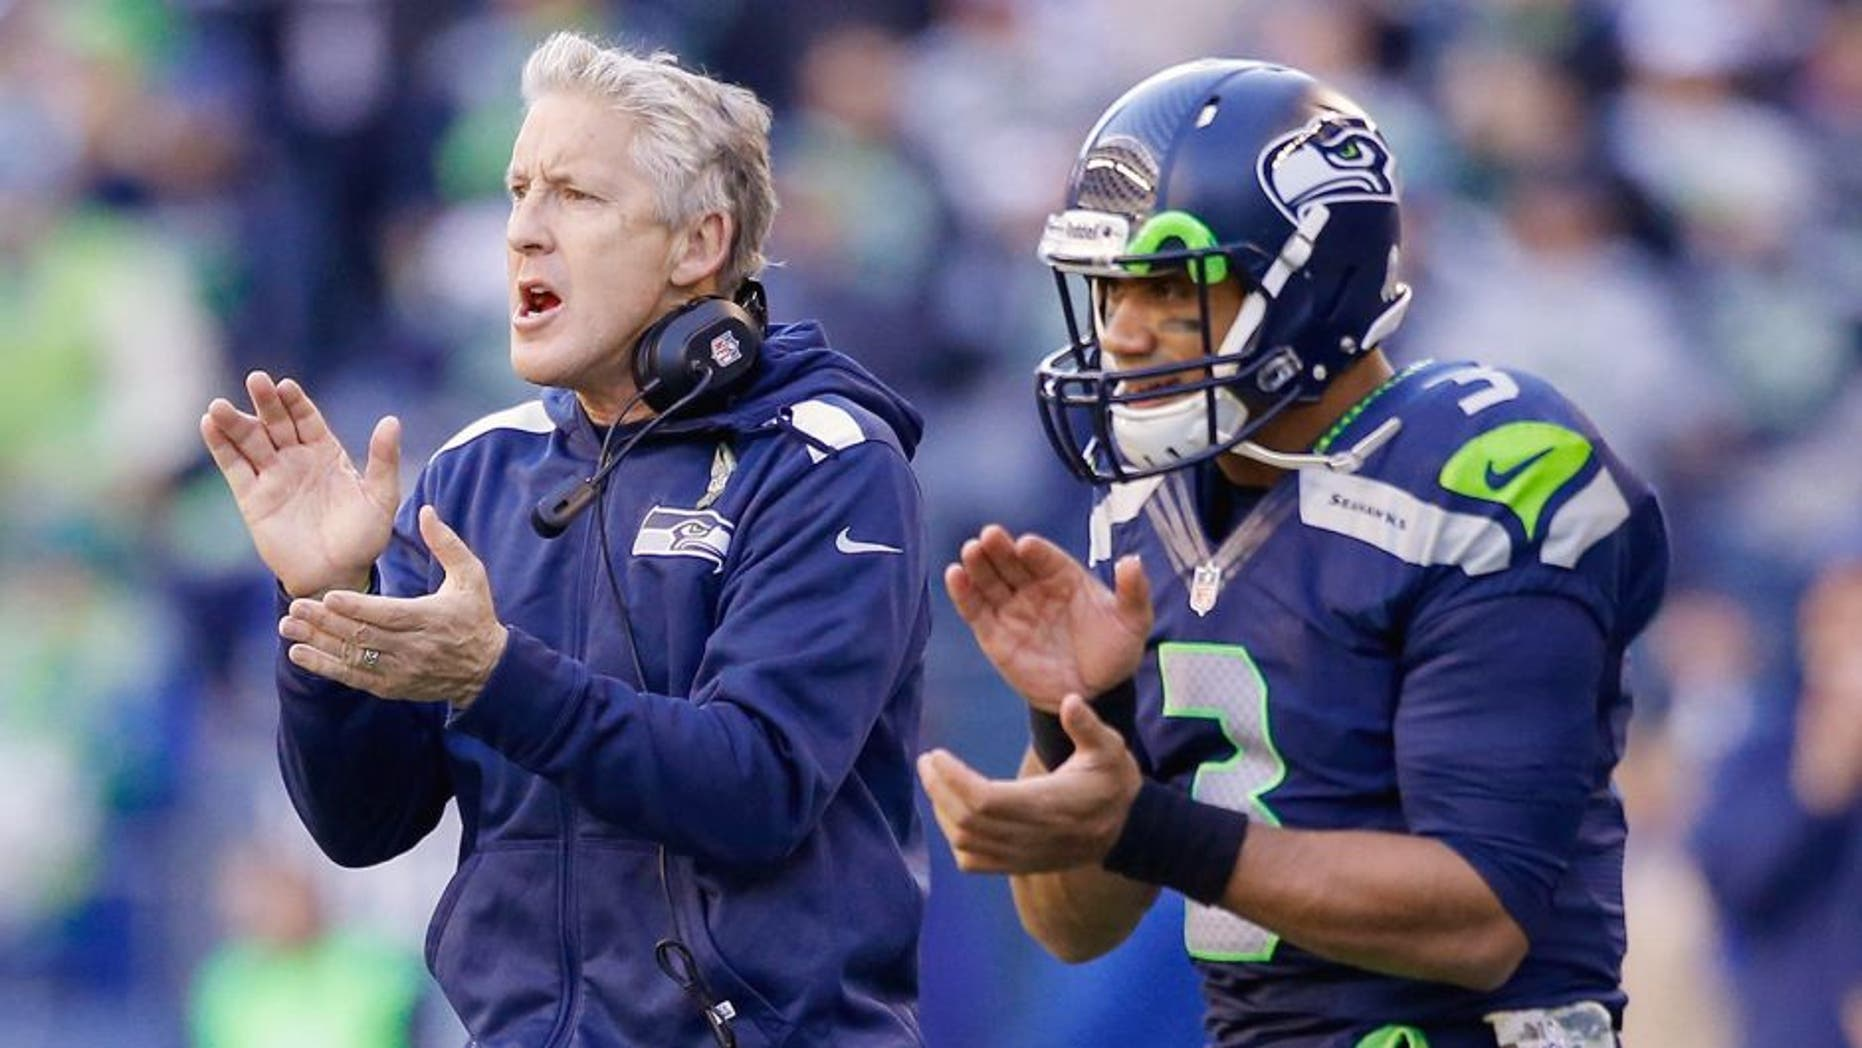 SEATTLE, WA - NOVEMBER 17: Head coach Pete Carroll and quarterback Russell Wilson #3 of the Seattle Seahawks react to a point after touchdown against the Minnesota Vikings at CenturyLink Field on November 17, 2013 in Seattle, Washington. (Photo by Otto Greule Jr/Getty Images)